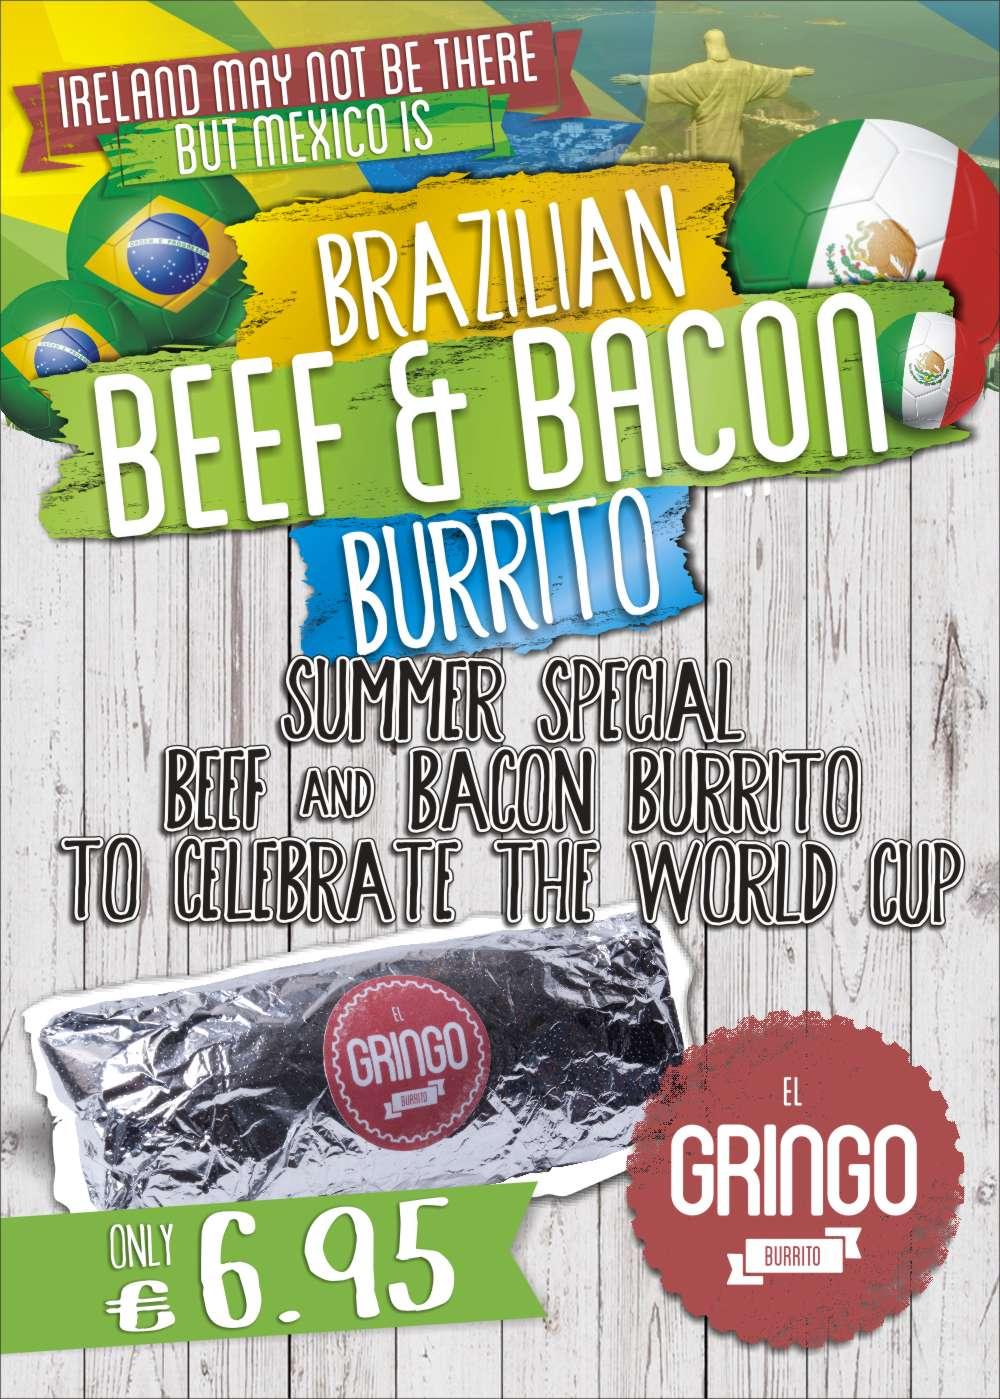 Brazilian Beef & Bacon Special